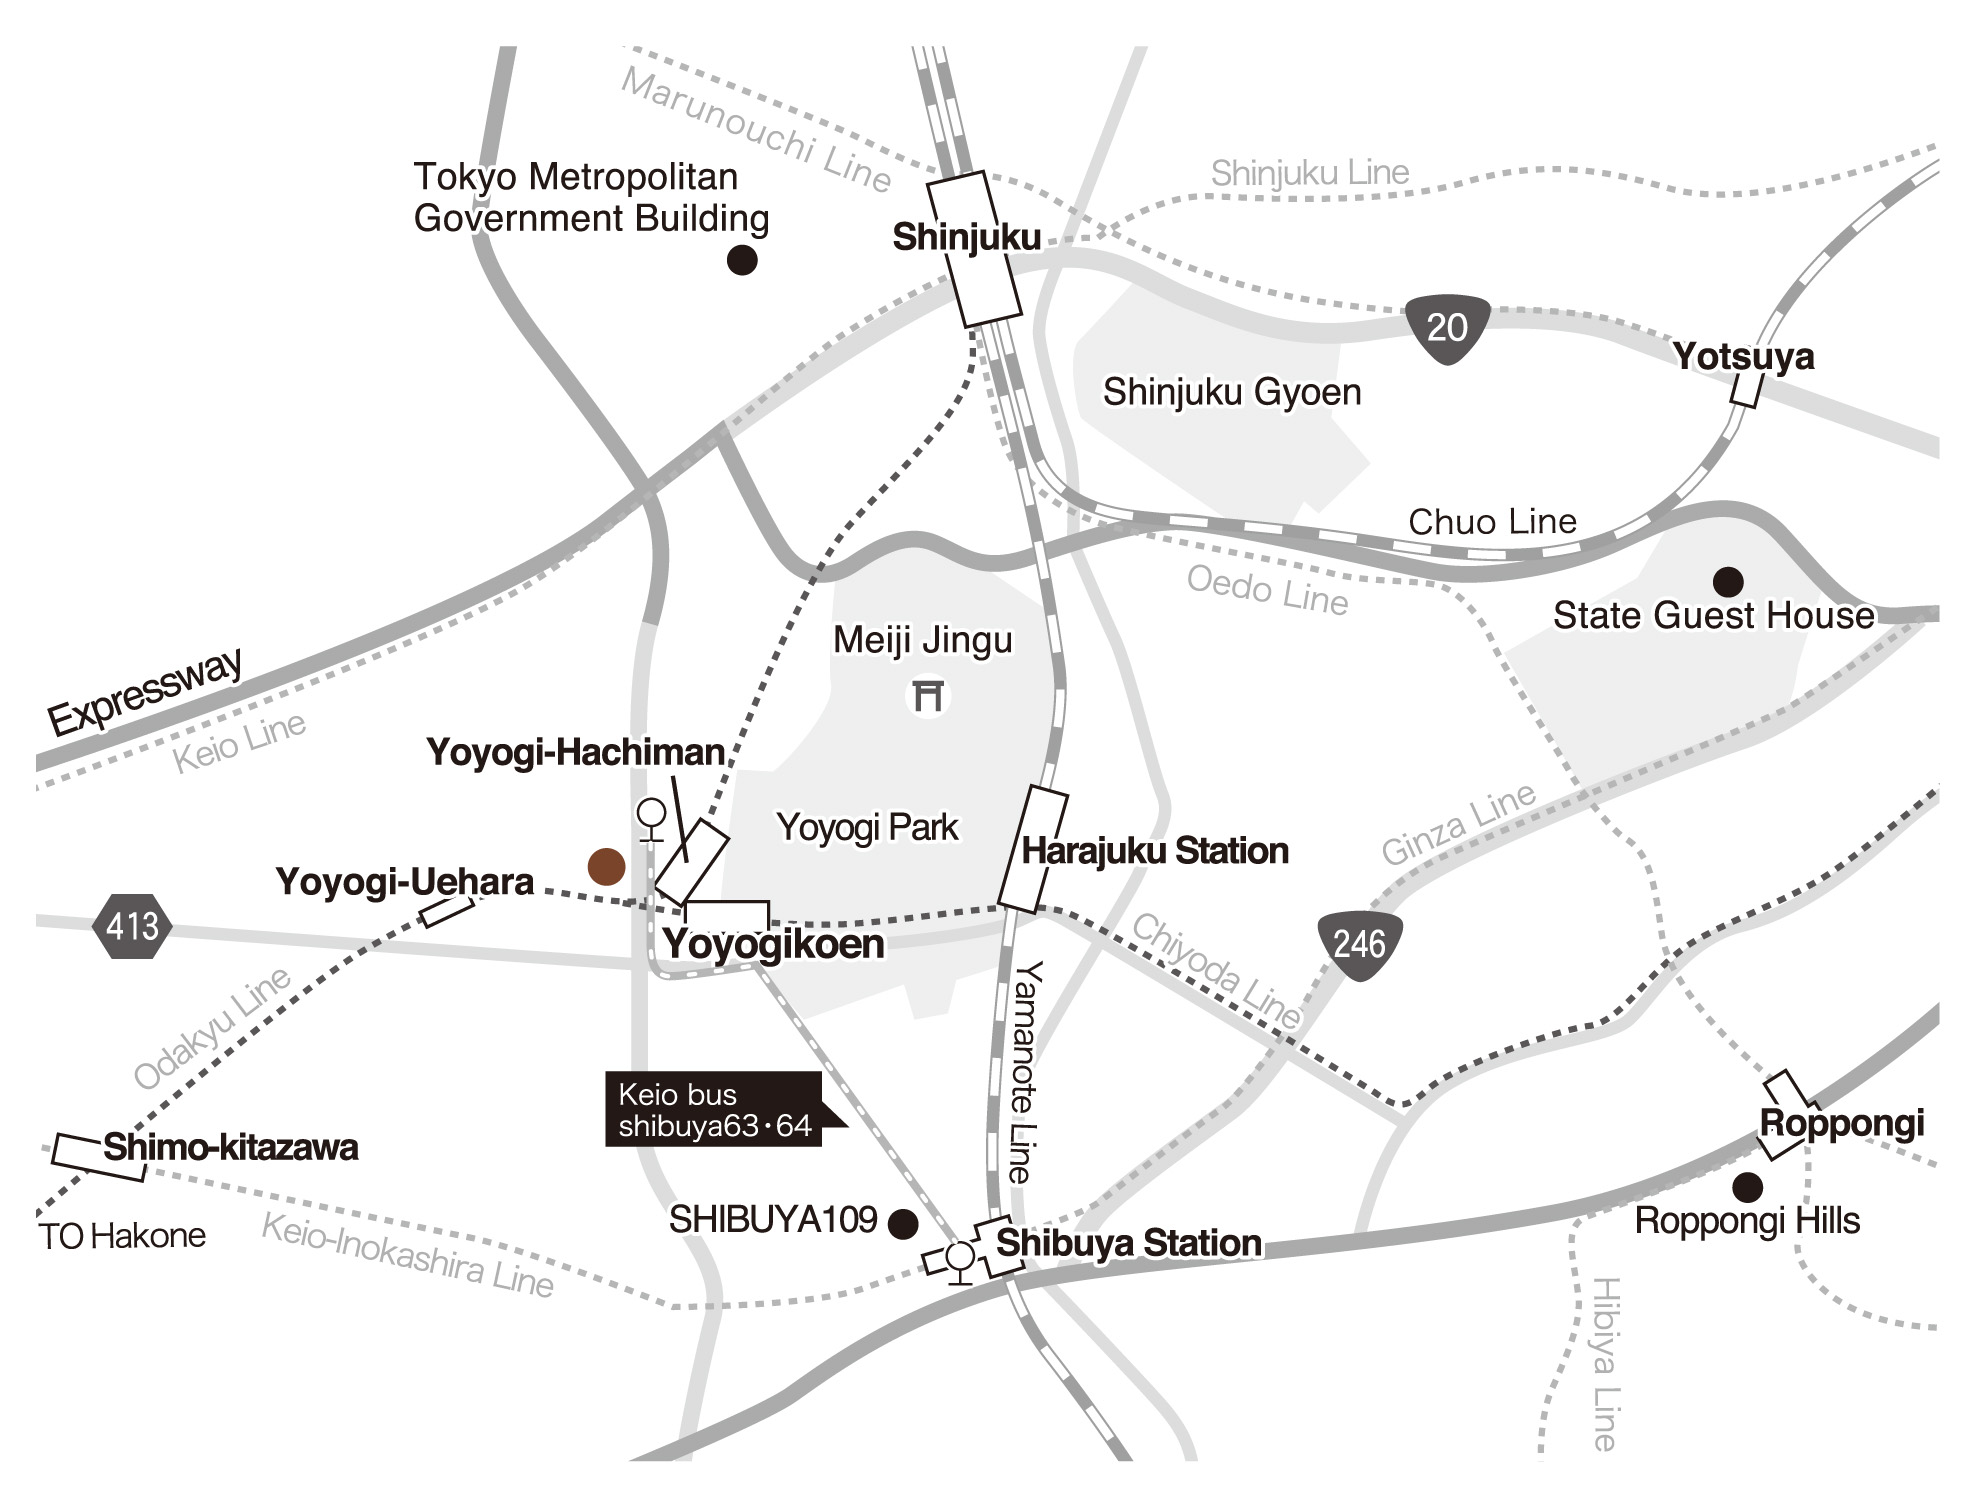 Location of Shibuya and Almond Hostel